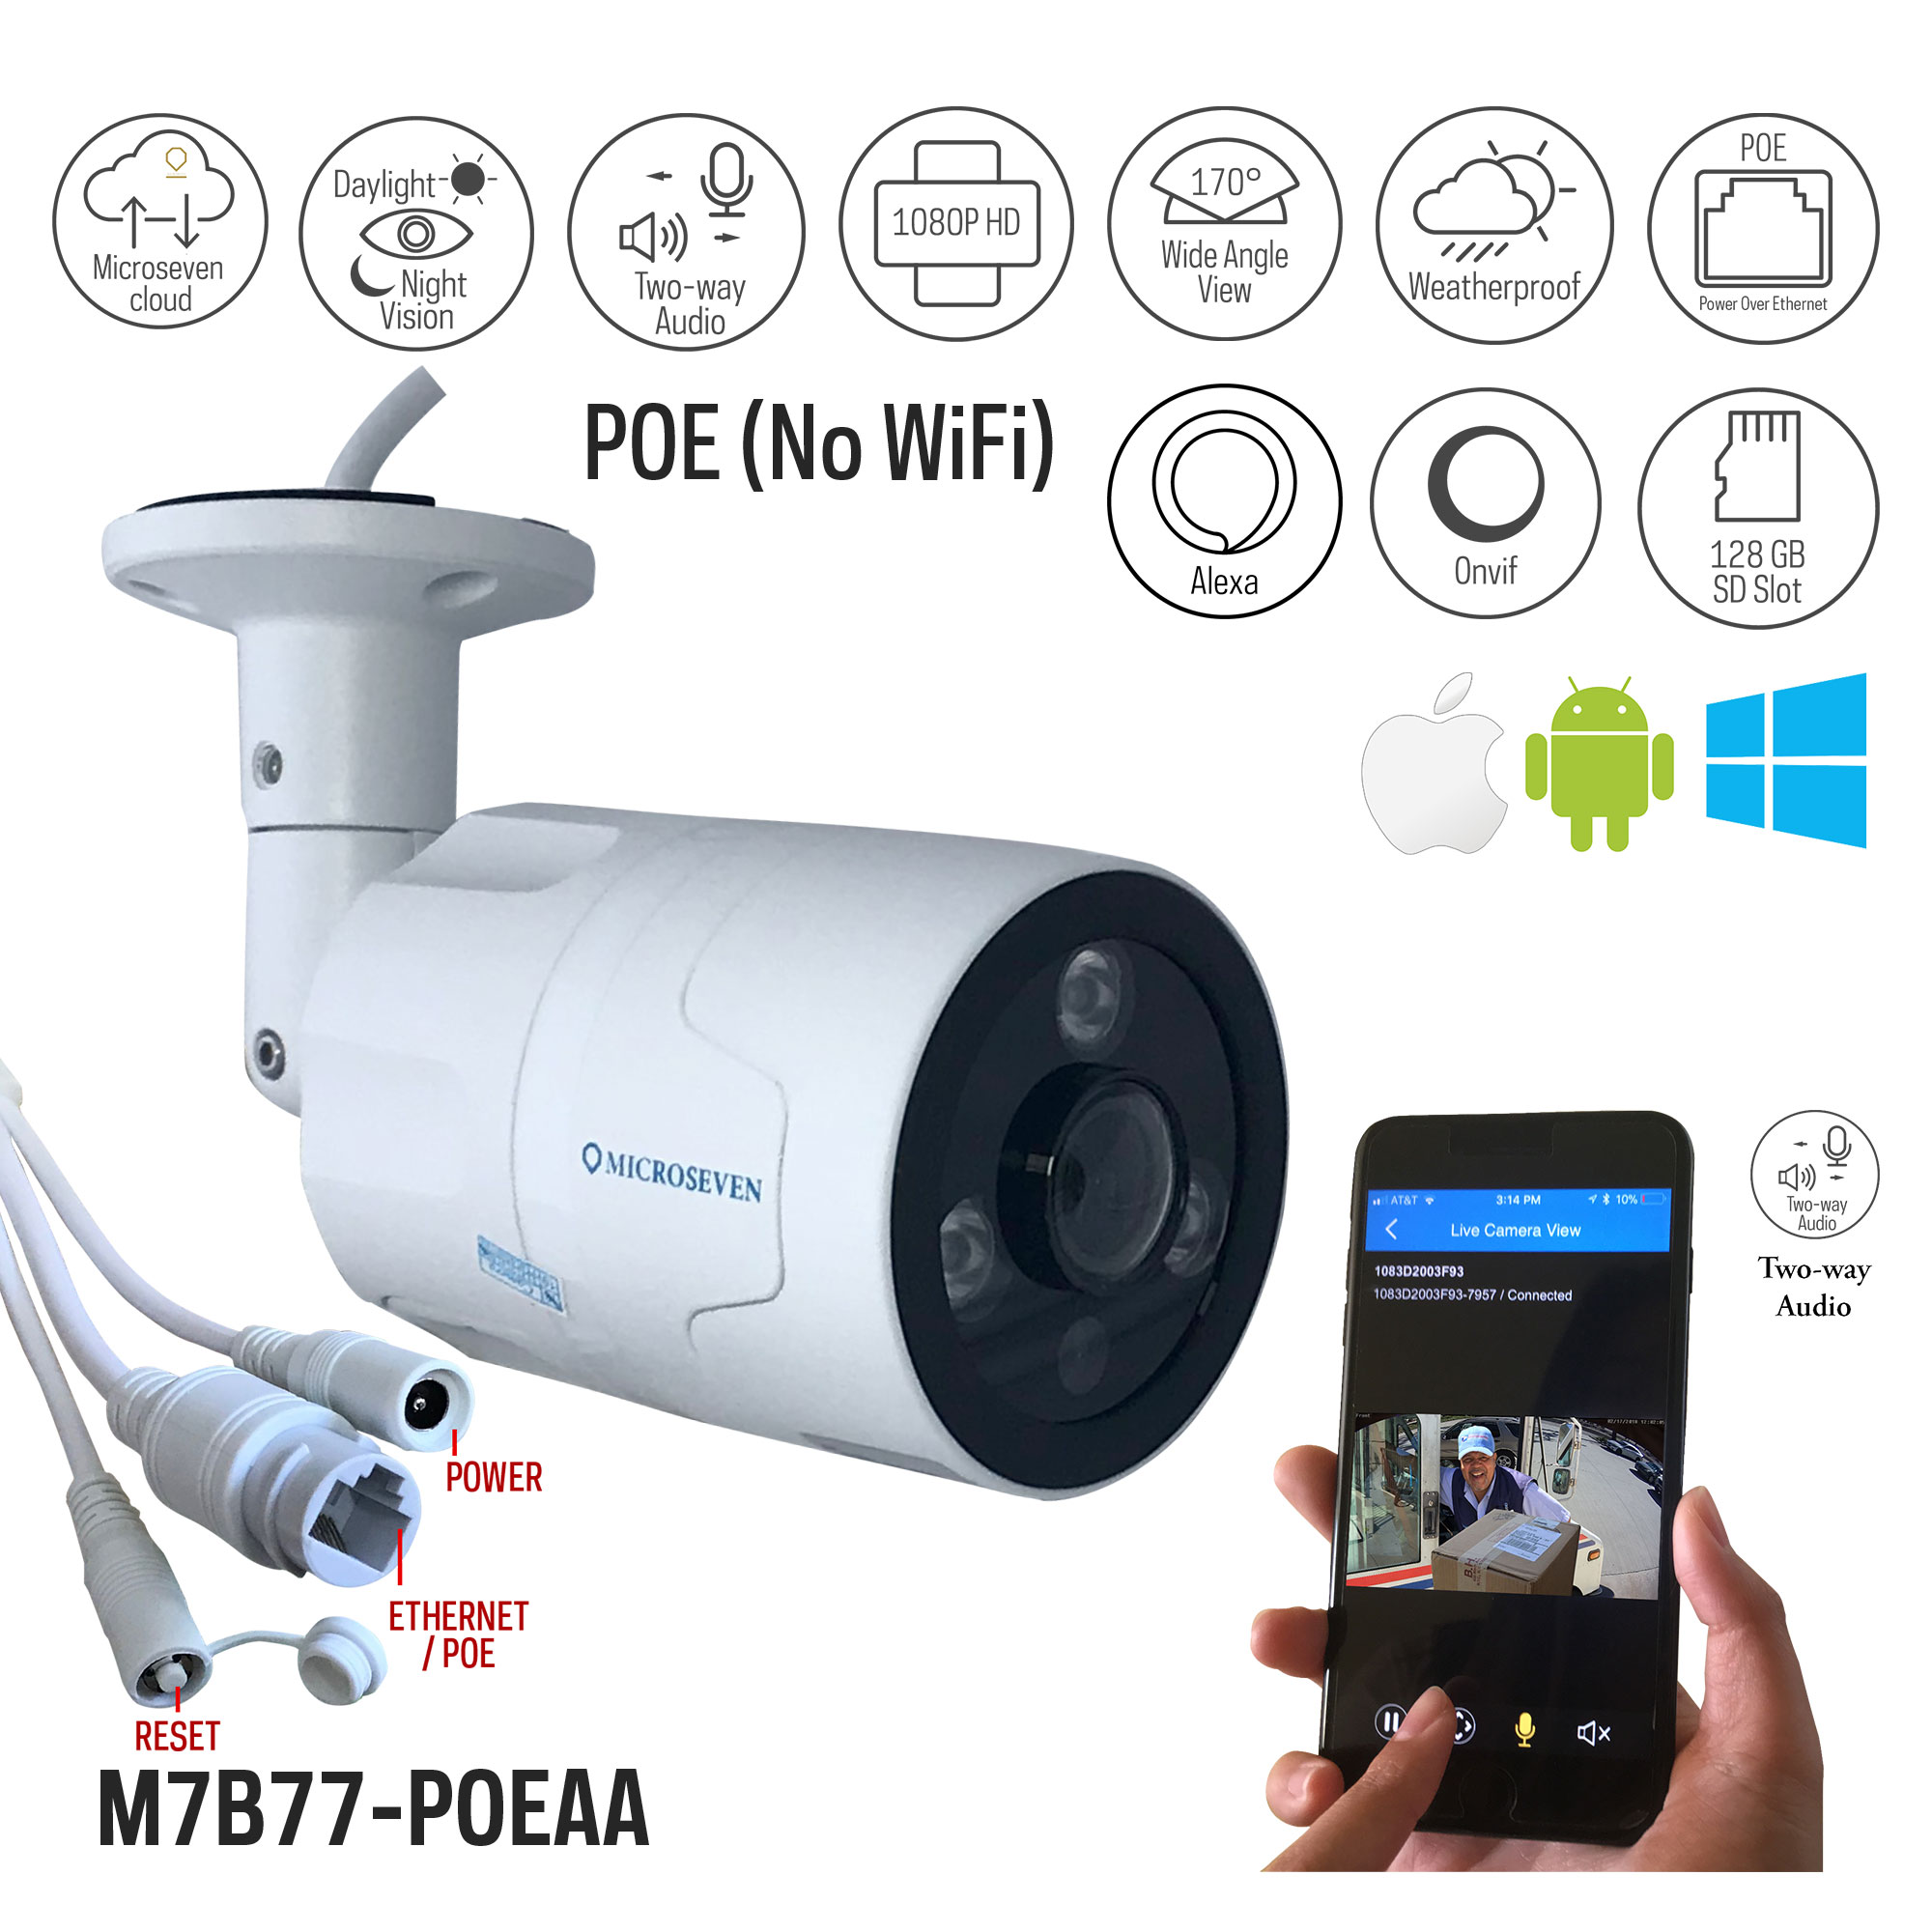 Microseven HD Works with Alexa, Free 24Hr Cloud , Two-Way Audio 1080P POE Wide Angle (170°) Outdoor IP Camera, SONY CMOS Built-in Microphone & Speaker +128GB SD Slot, Day & Night, ONVIF, Free Live Streaming microseven.tv (No WiFi)